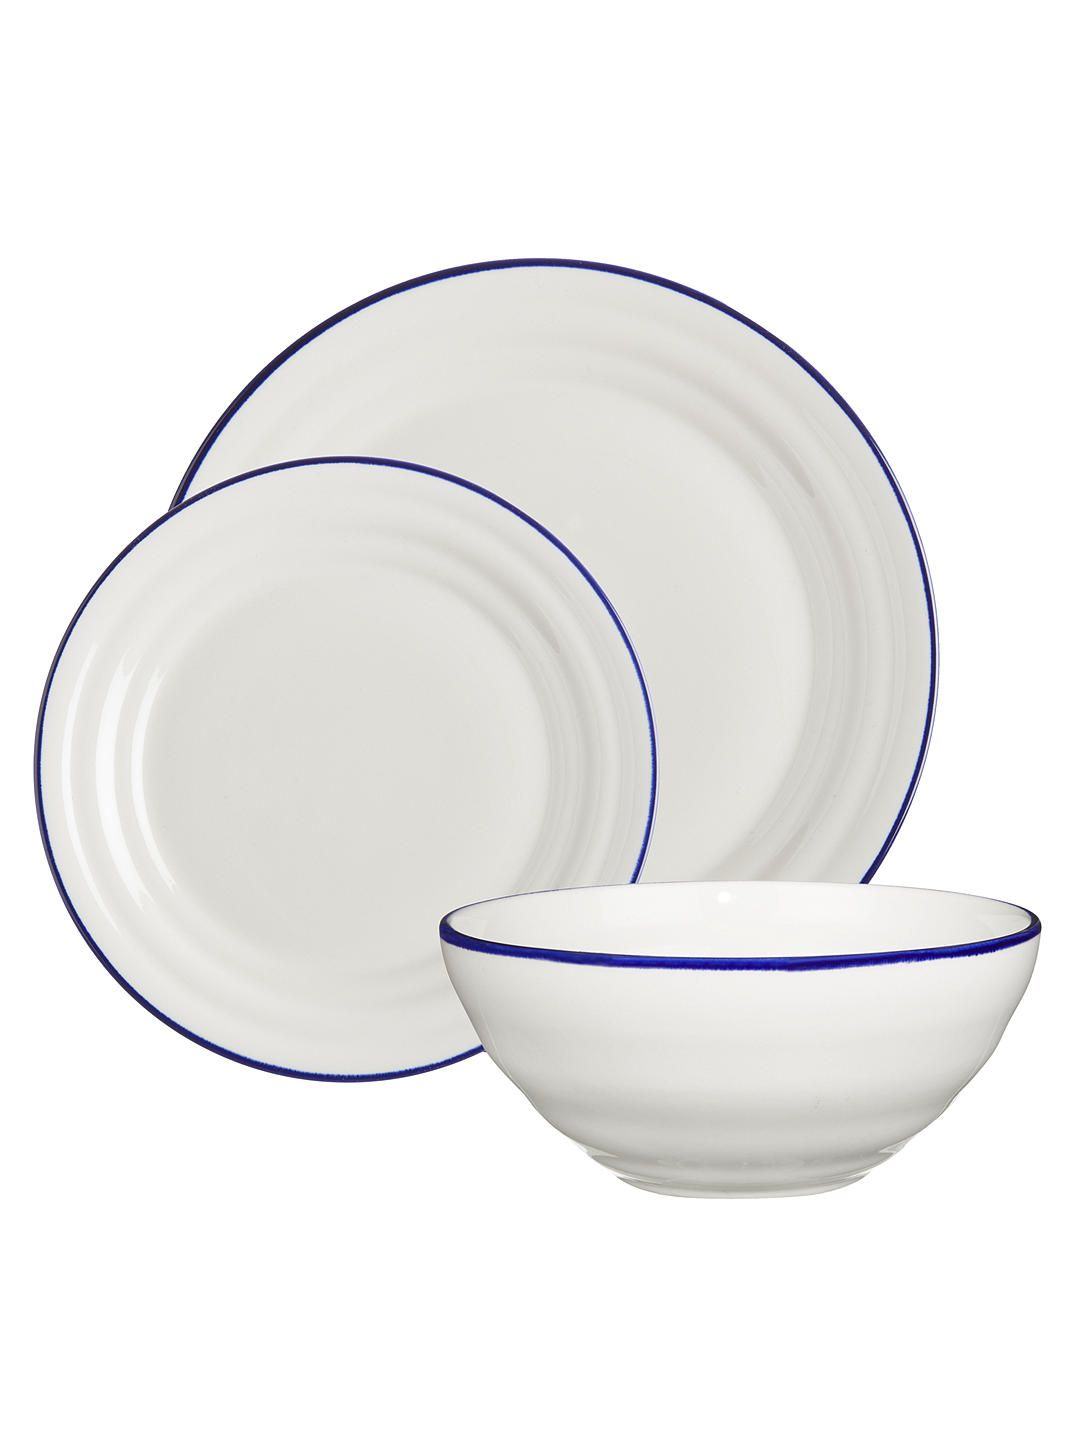 John Lewis Partners Harbour Blue Rim Dinnerware Set White Blue 12 Pieces Dinnerware Set Crockery Design White Dinnerware Set